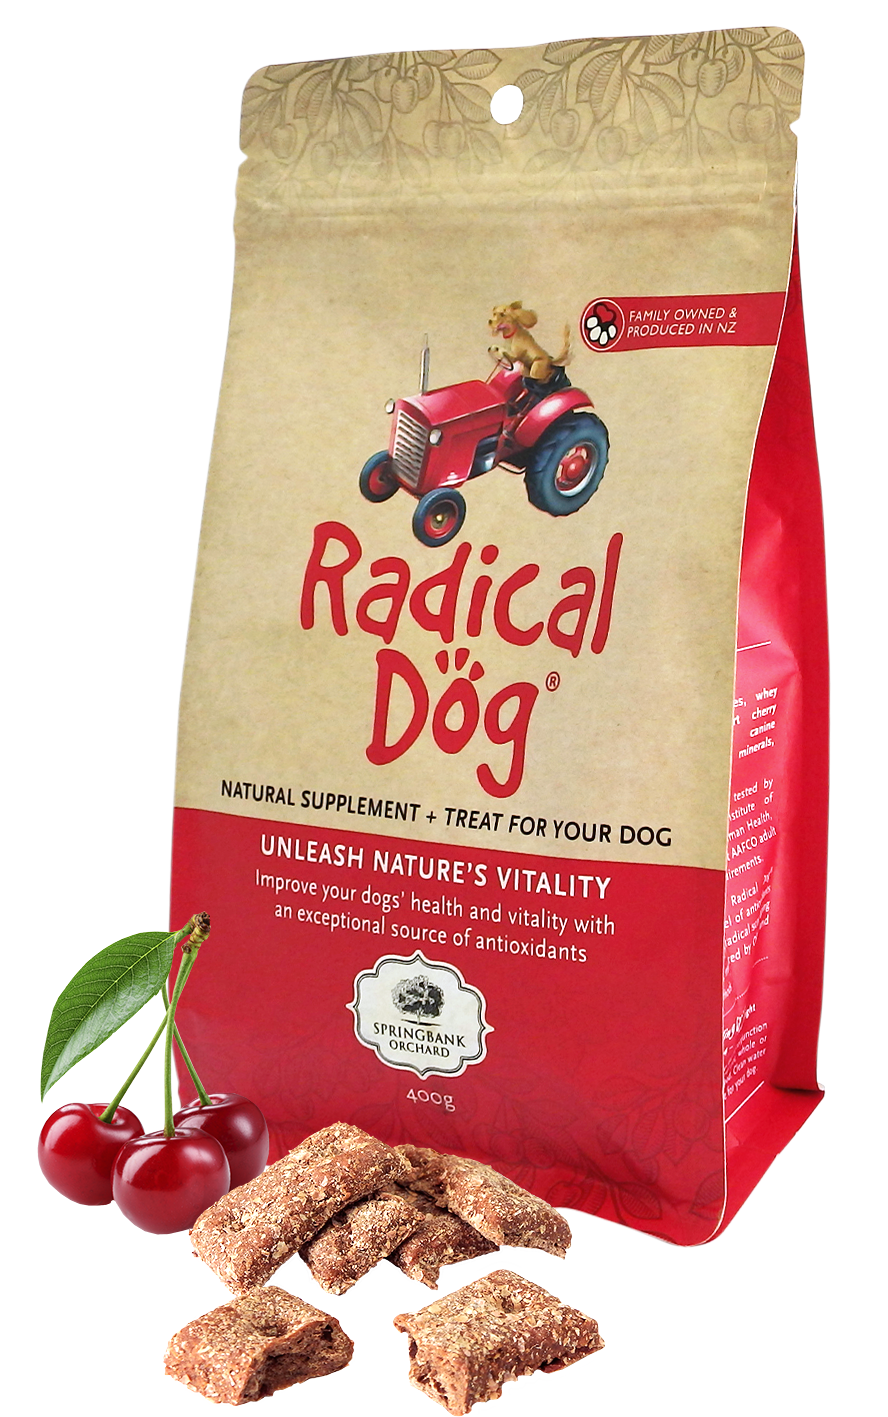 Radical Dog natural dog biscuits packaging